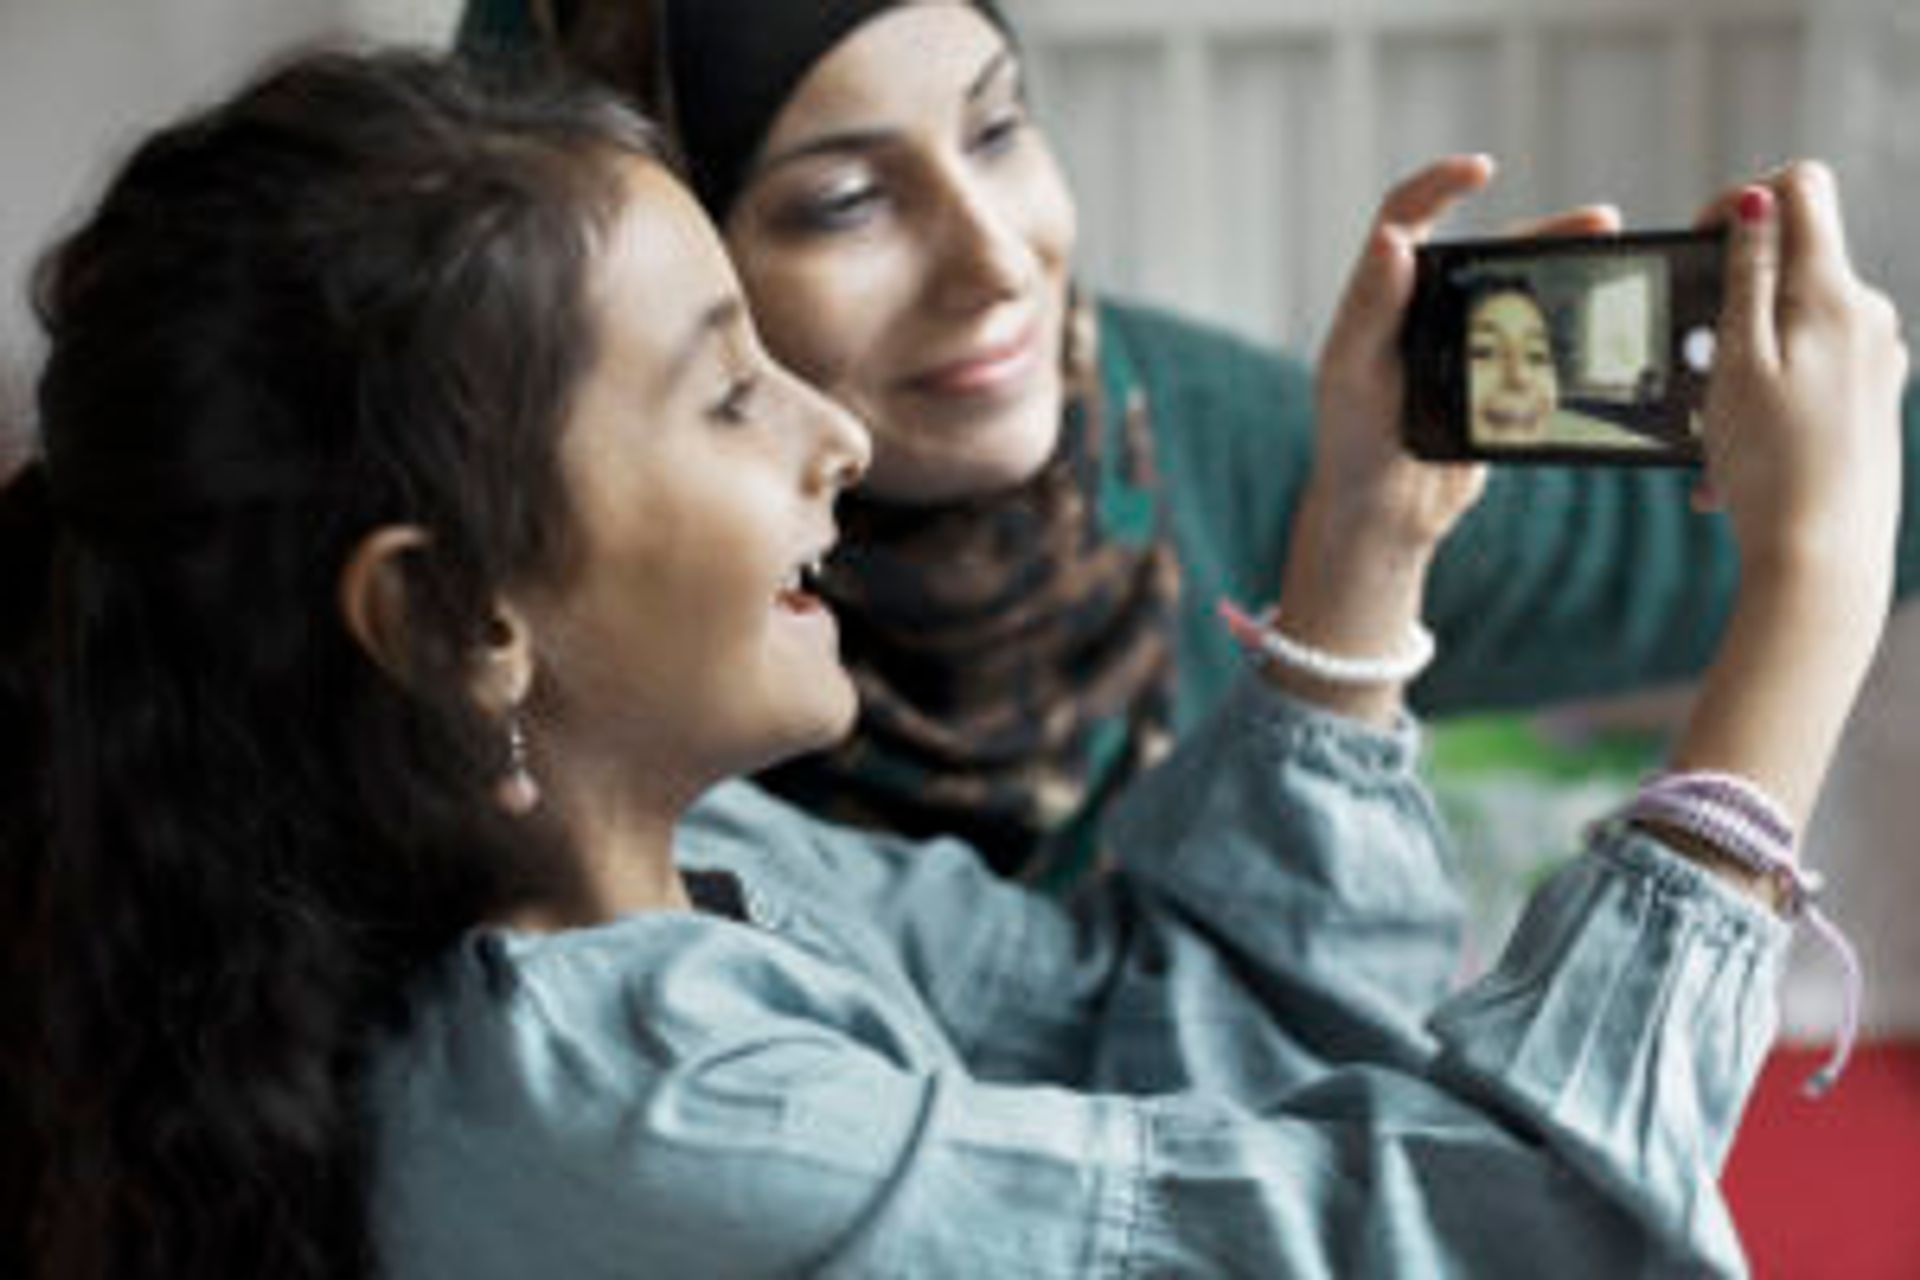 A smiling woman and child taking a selfie together.